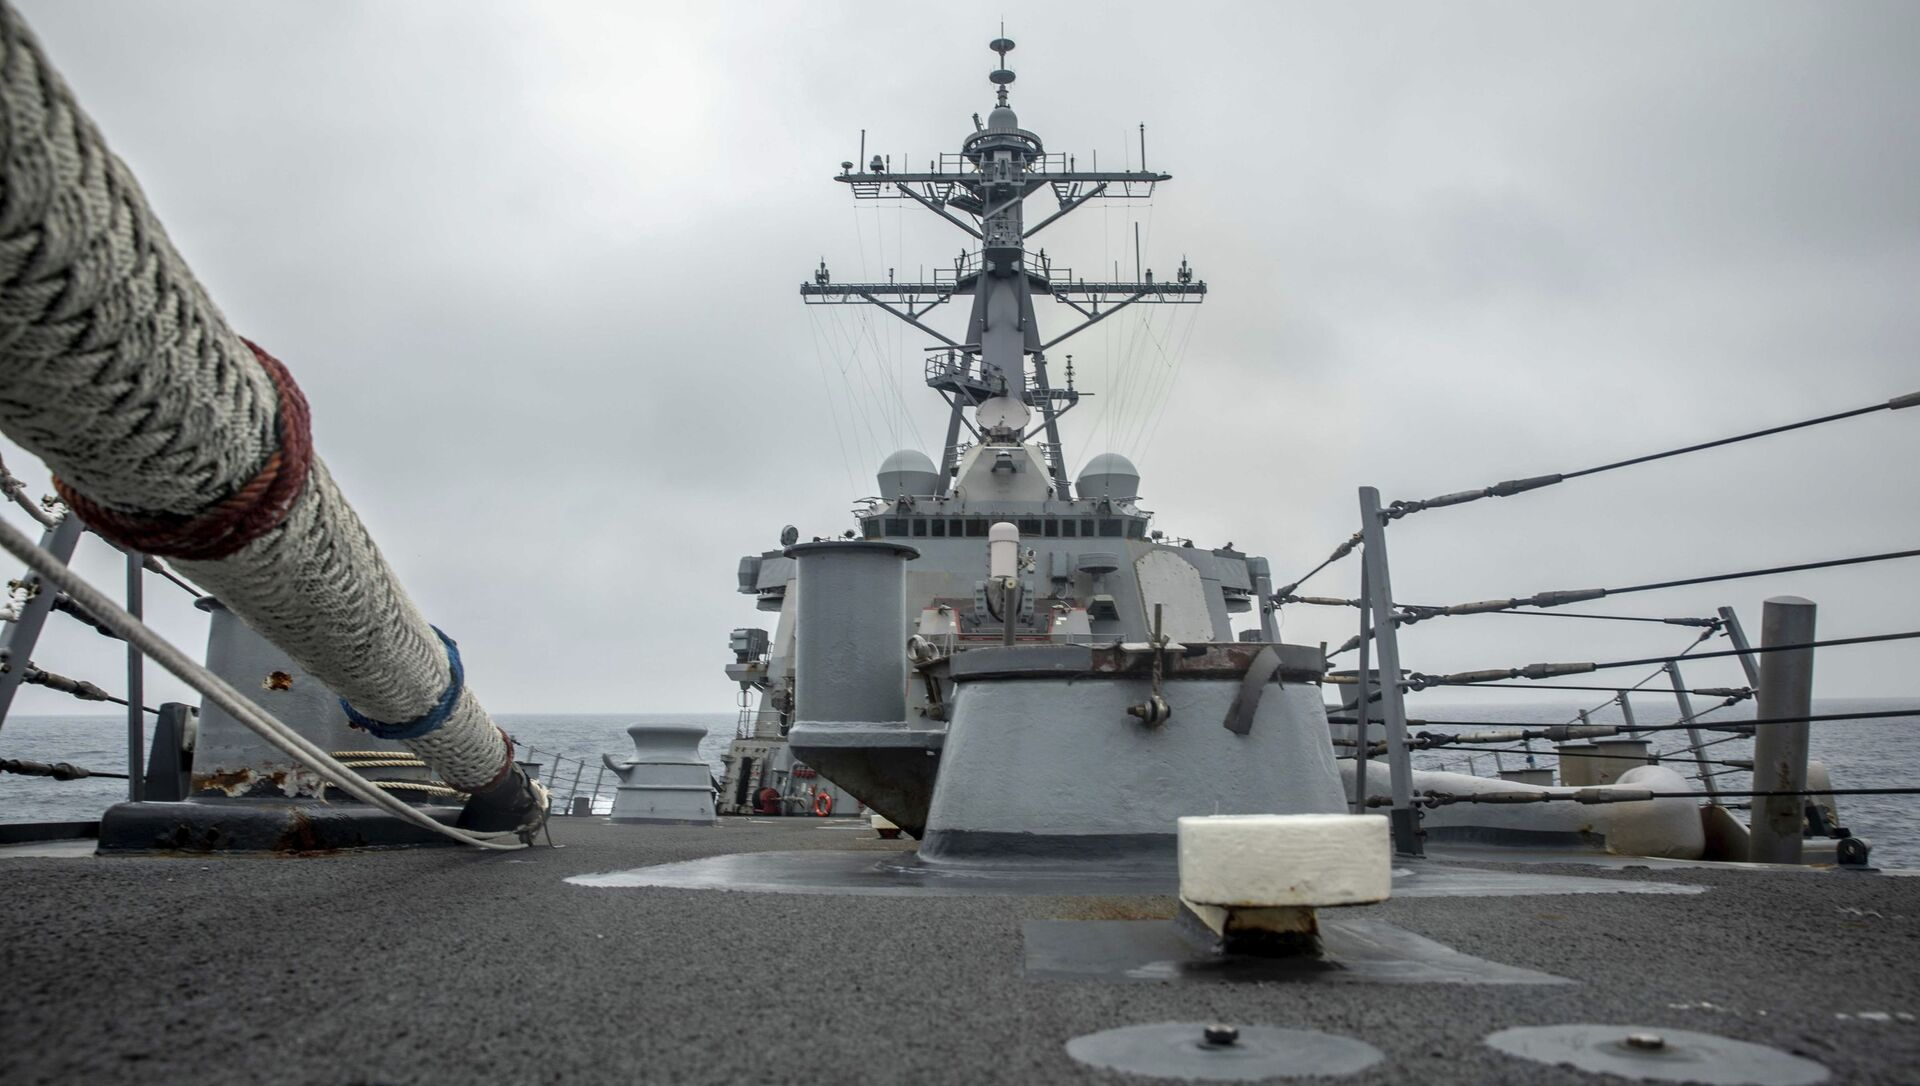 In this photo released by the U.S. Navy, the U.S. Arleigh Burke-class guided-missile destroyer USS Curtis Wilbur (DDG 54) conducts routine operations in the Taiwan Strait, May 18, 2021. - Sputnik International, 1920, 03.08.2021